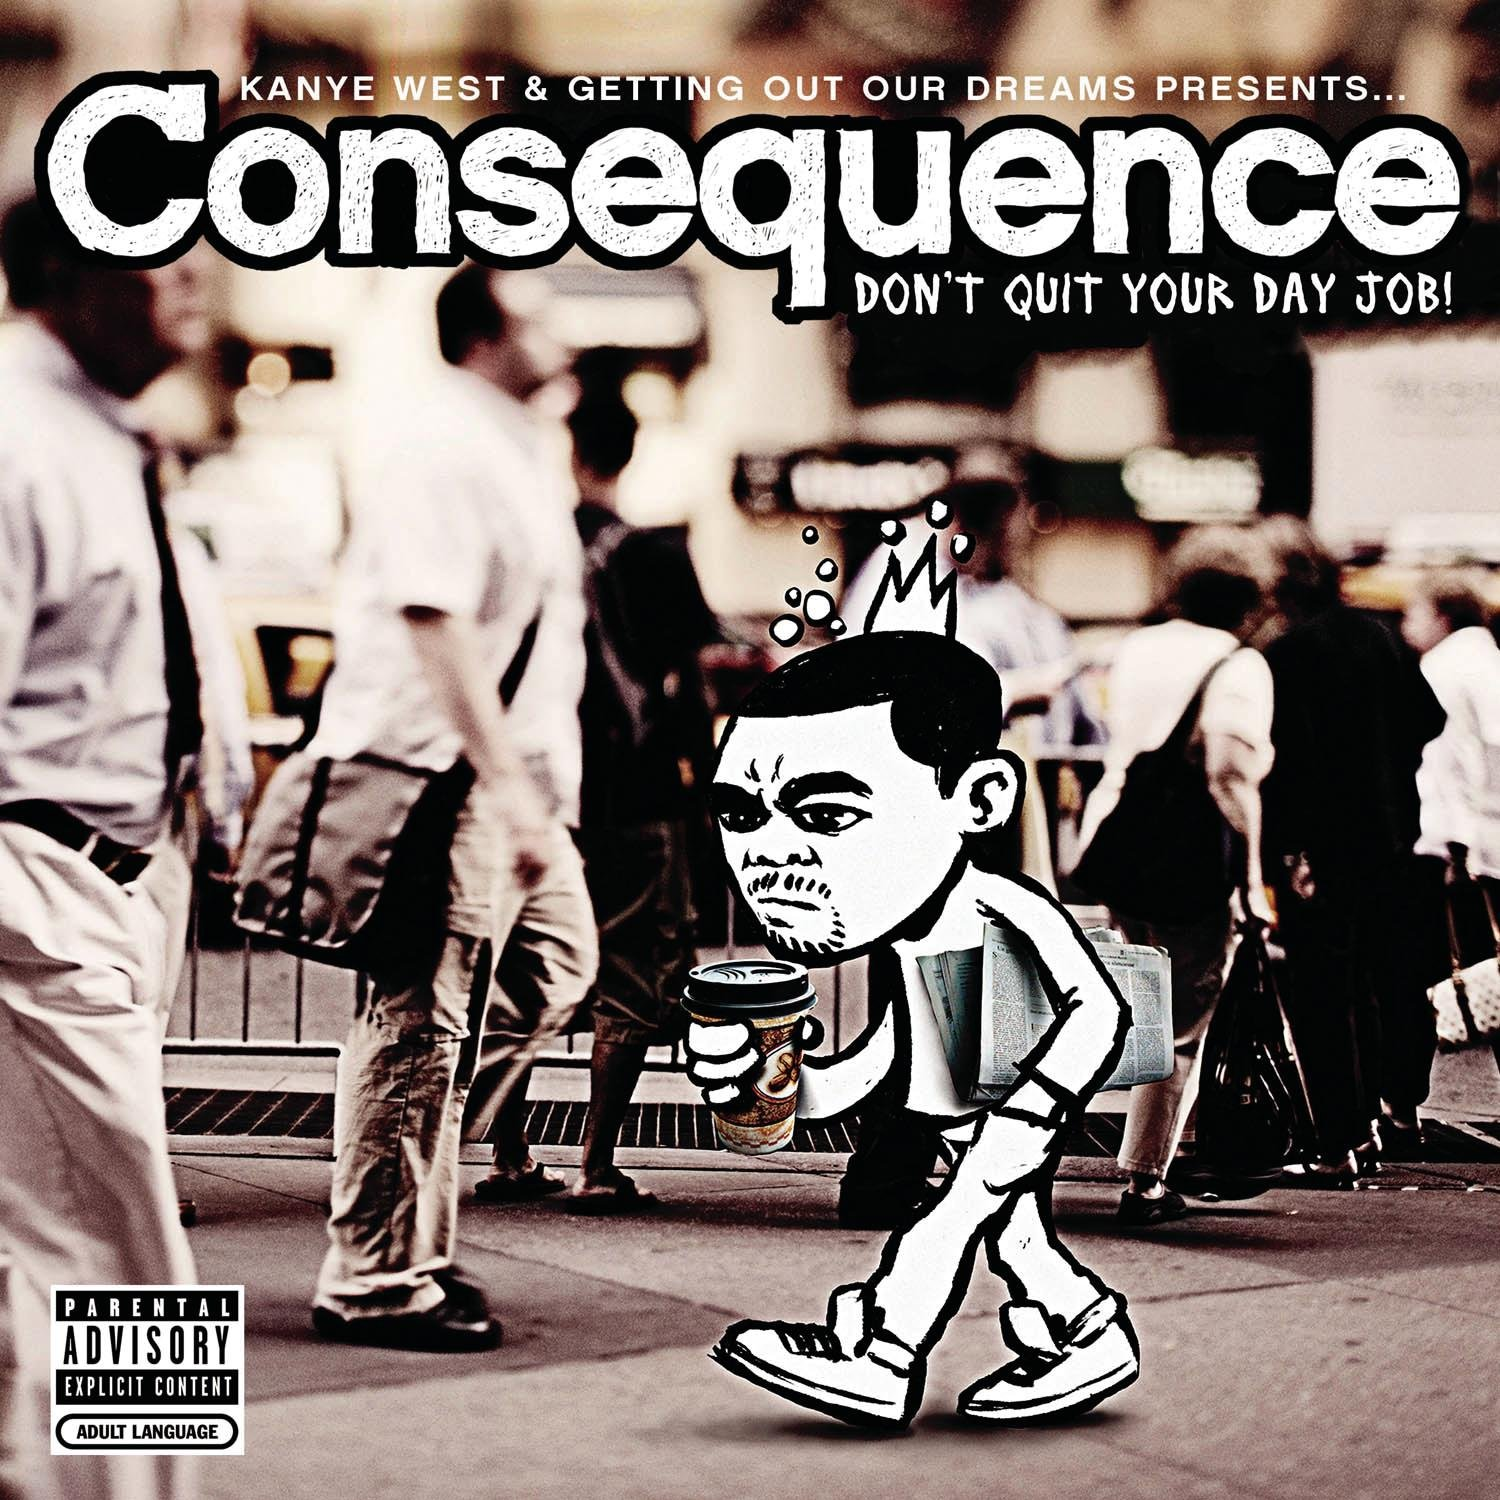 consequence dont quit your day job amazoncom music - How To Quit Your Job Dont Quit Your Day Job Before Finding A New One